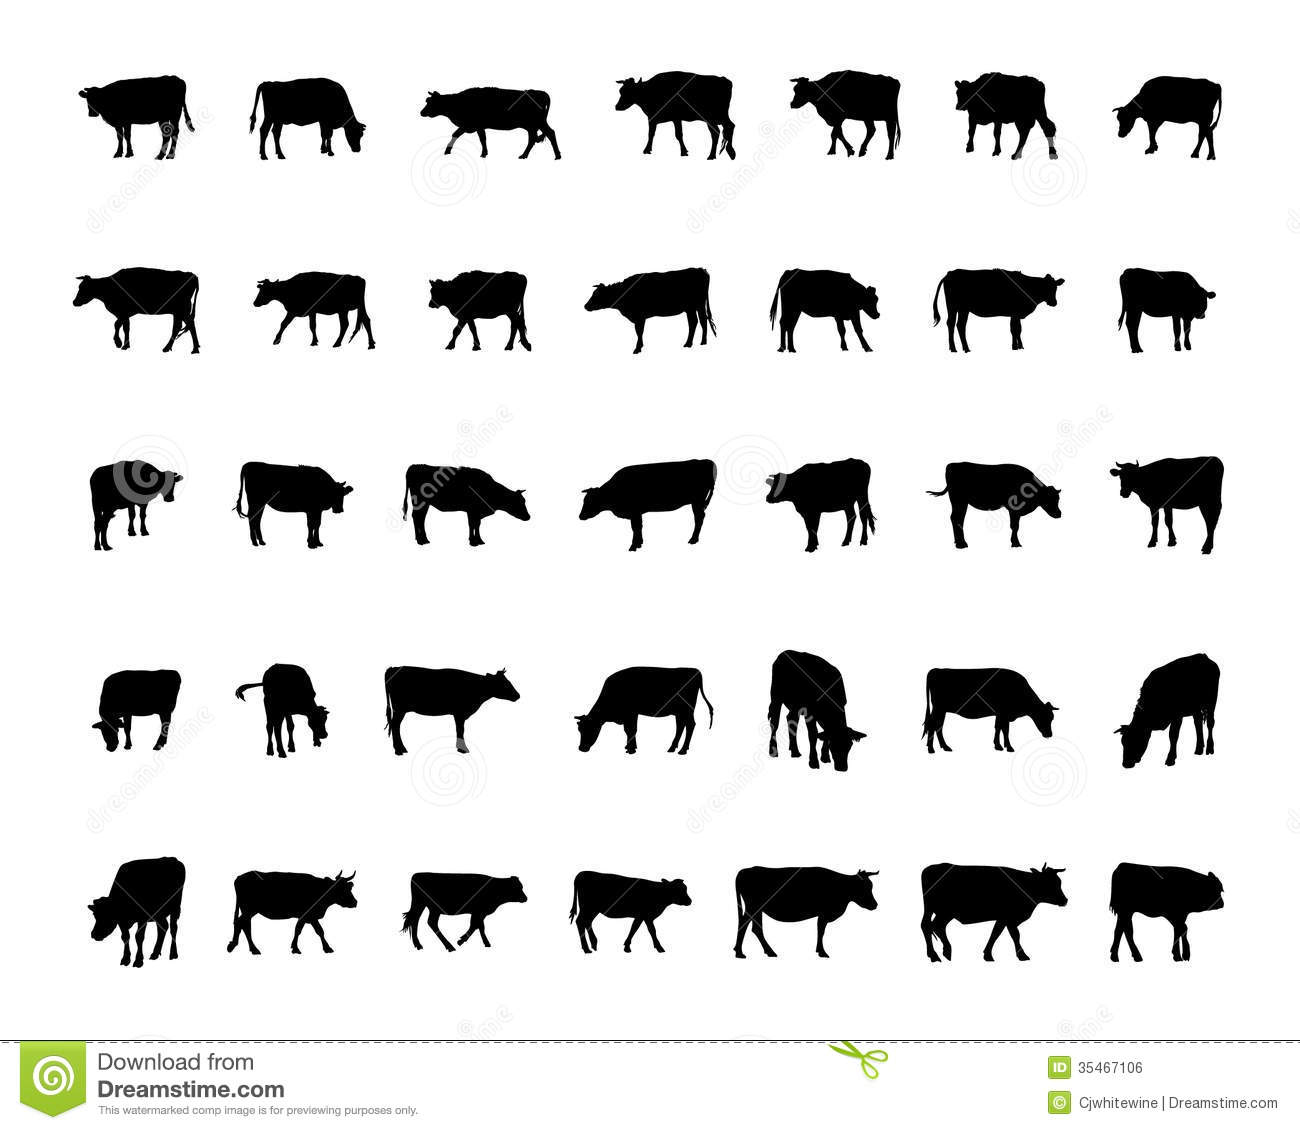 Cow Silhouettes Royalty Free Stock Image